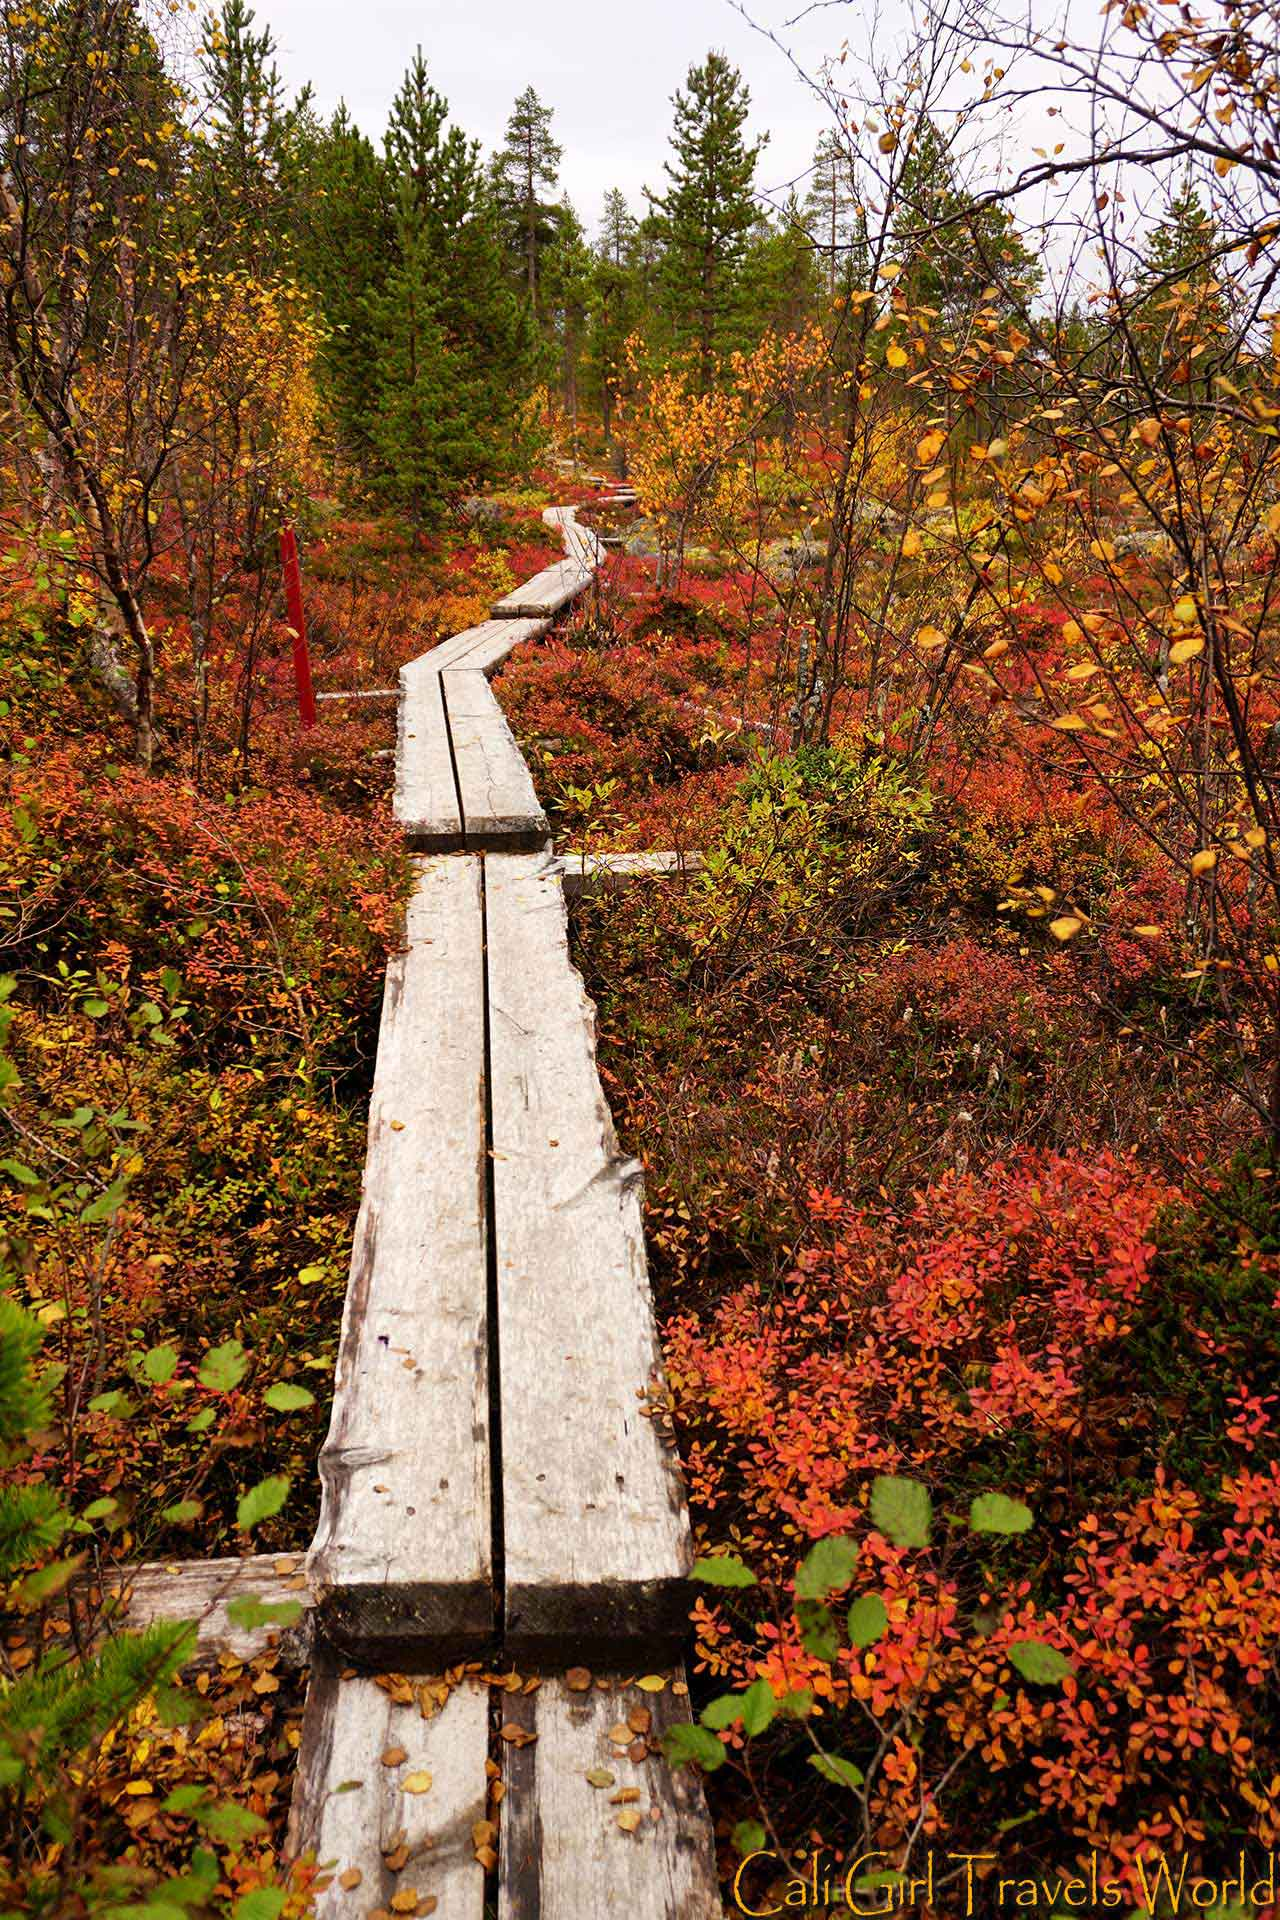 A nature path surrounded by red, yellow, and green fall leaves and trees.